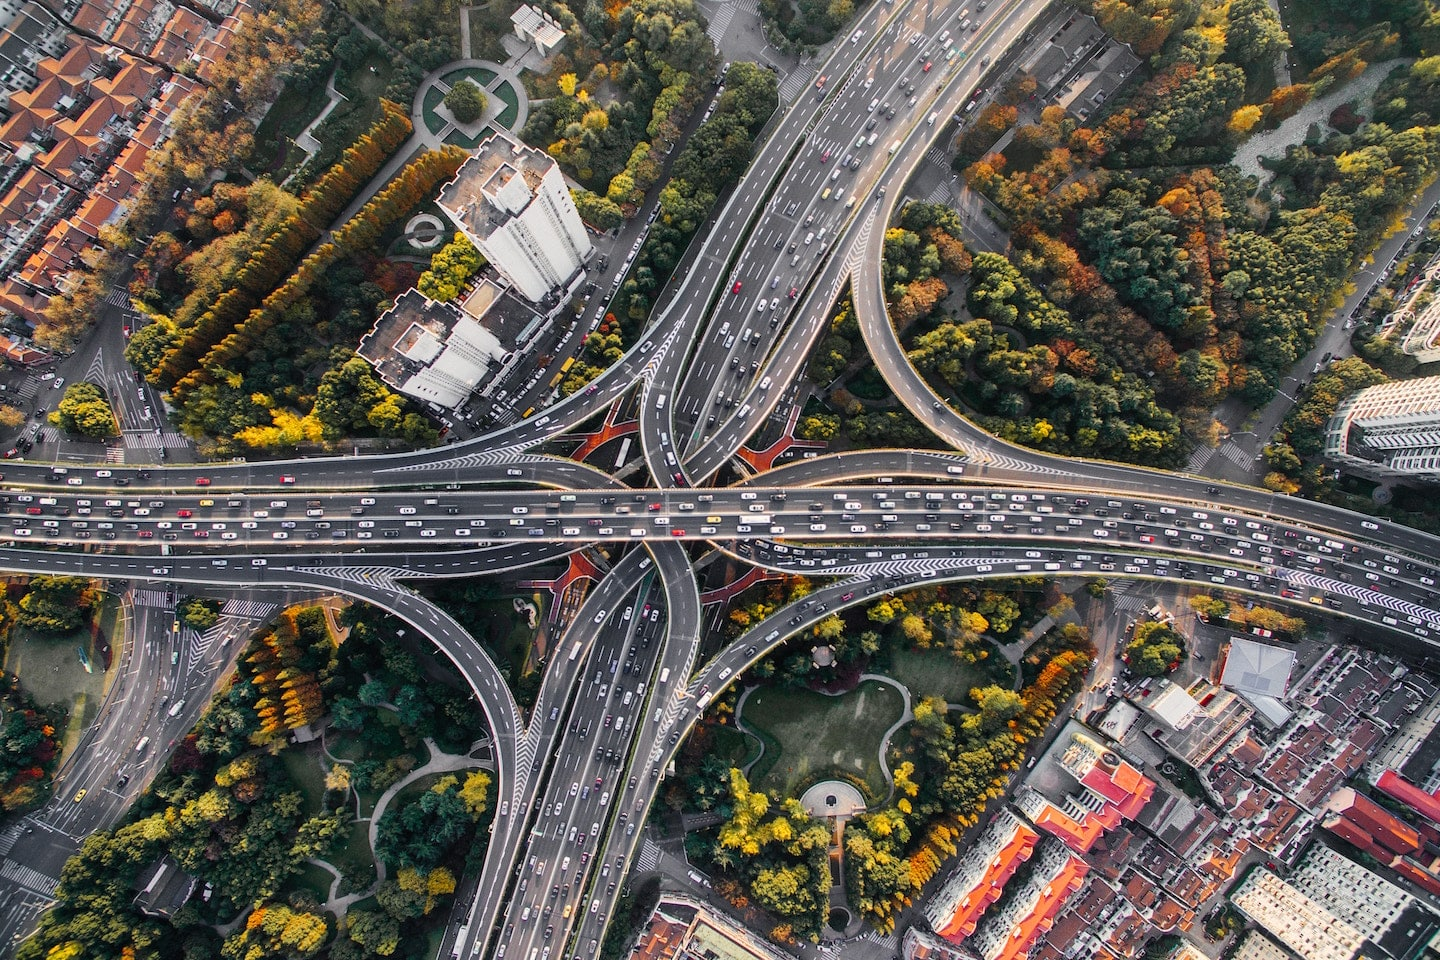 aerial view of city highways and moving traffic